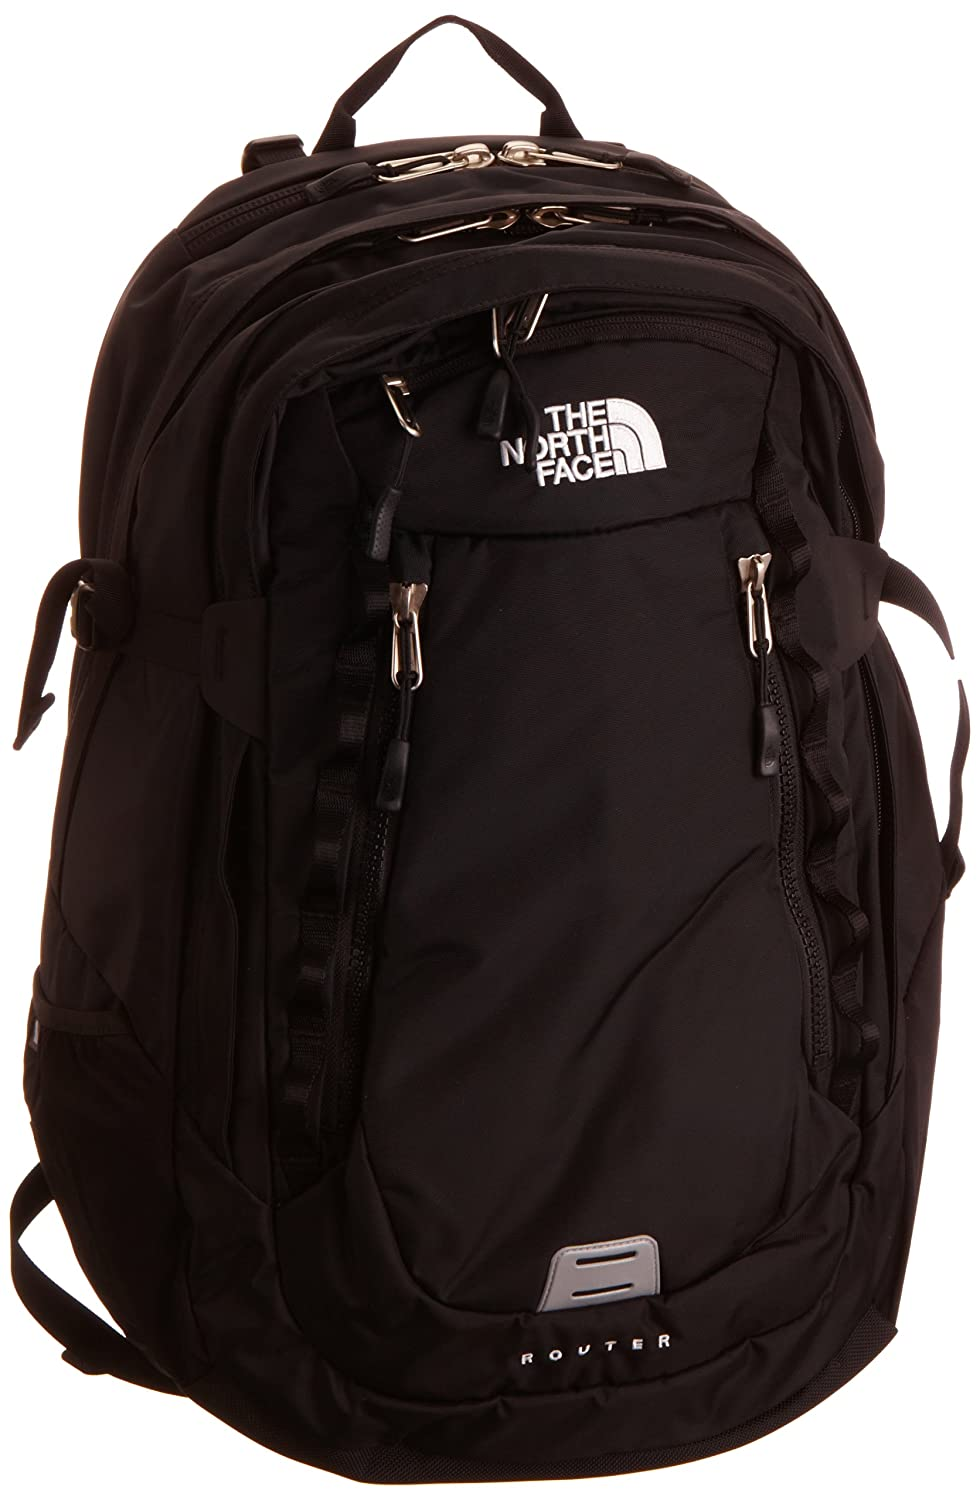 9d7d7f644 The North Face Router Laptop Backpack One Size TNF Black: Amazon.ca ...